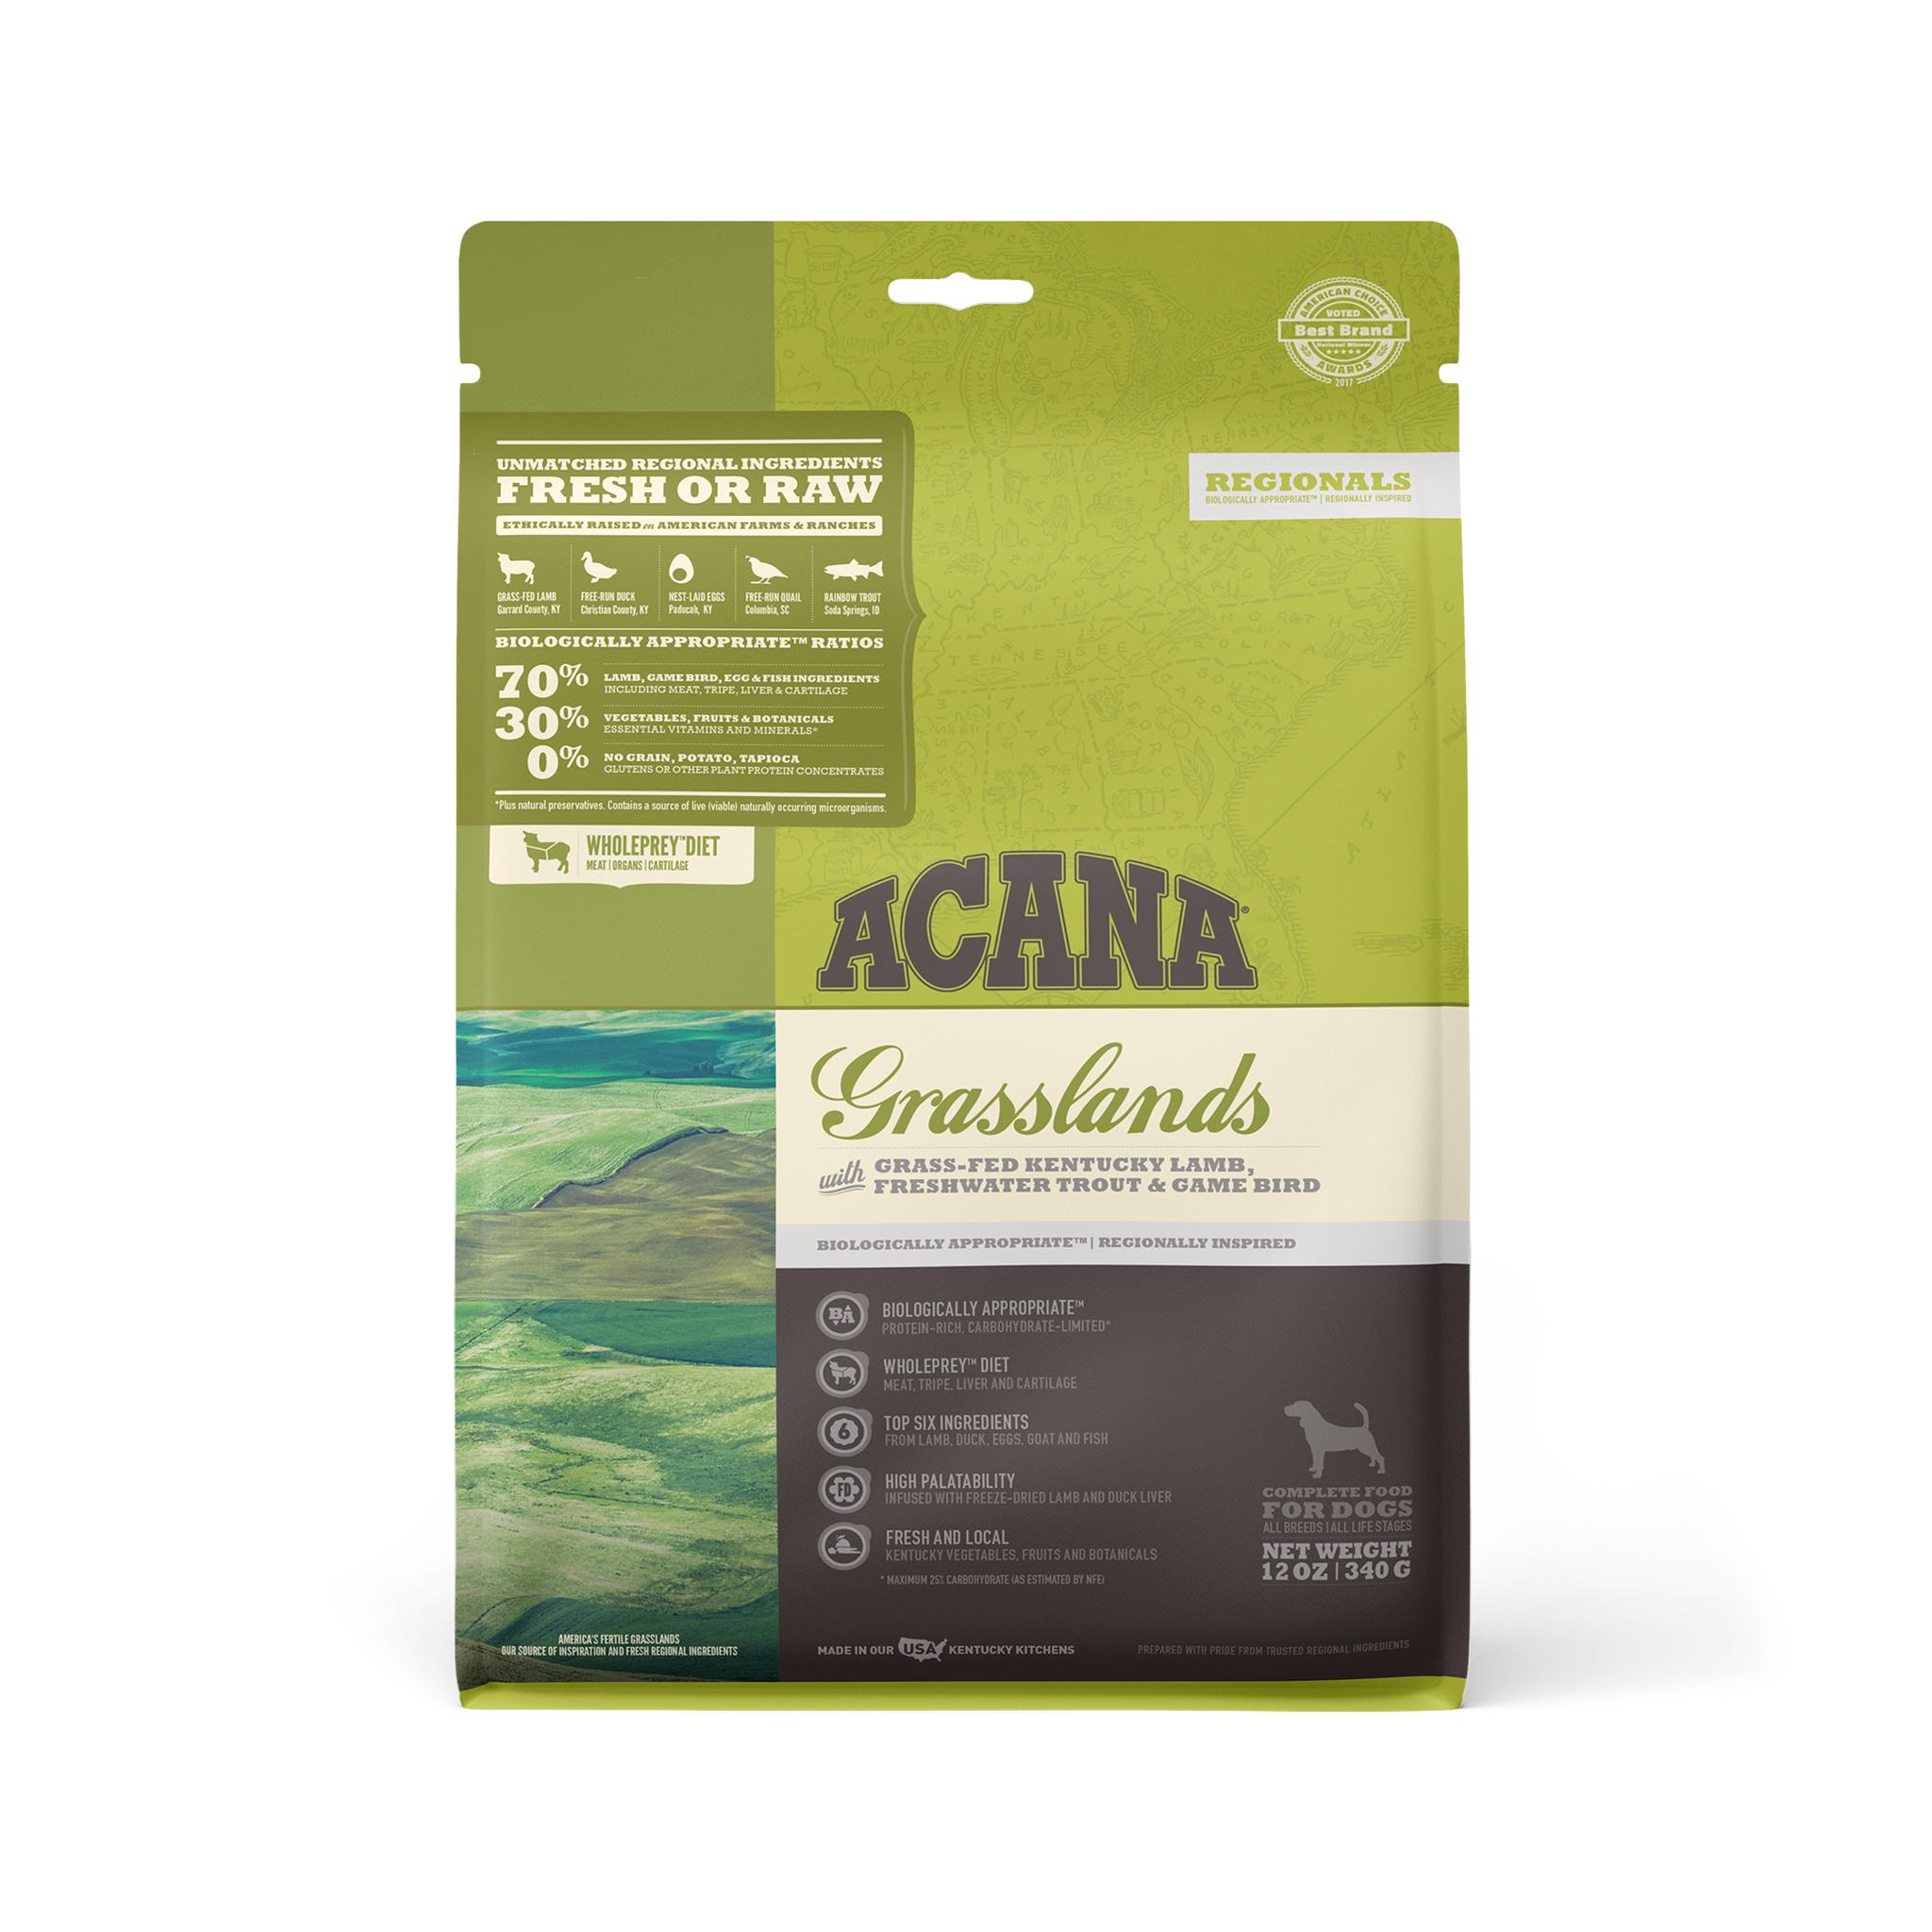 ACANA Regionals Grasslands Grain-Free Dry Dog Food Image